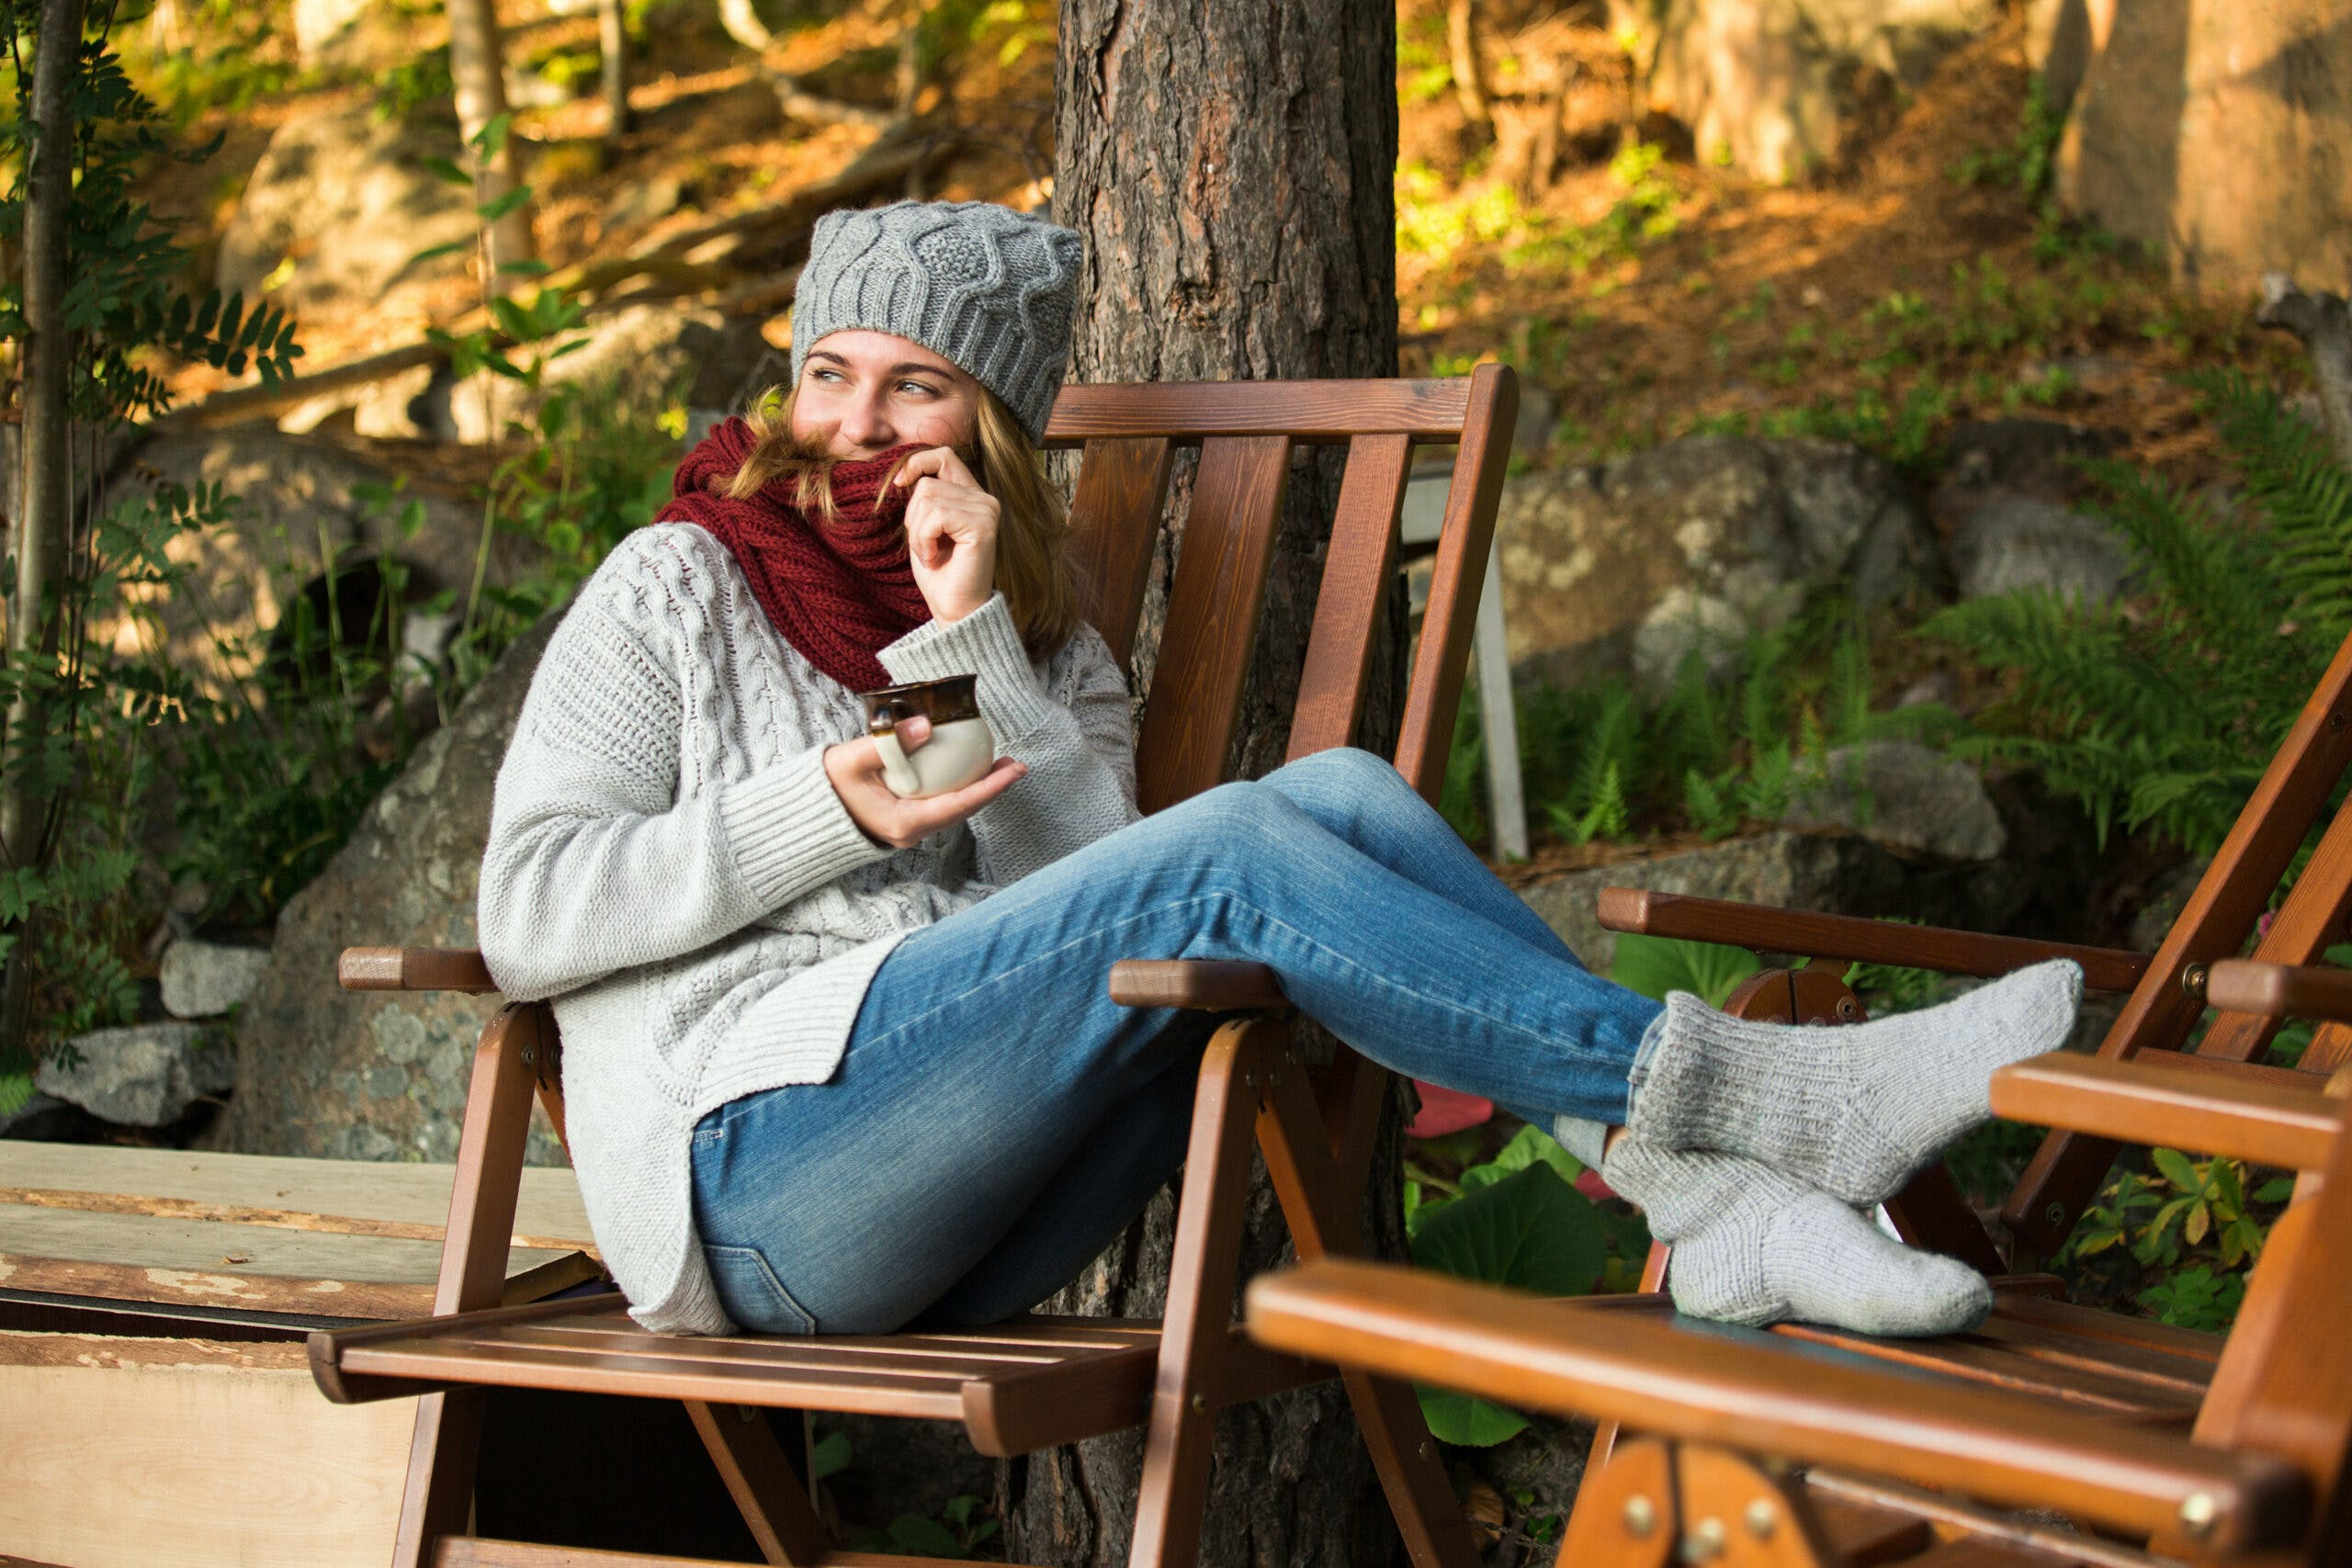 Woman In A Knitted Sweater And A Knitted Hat Sits: Stay in scandinavia for a city holiday